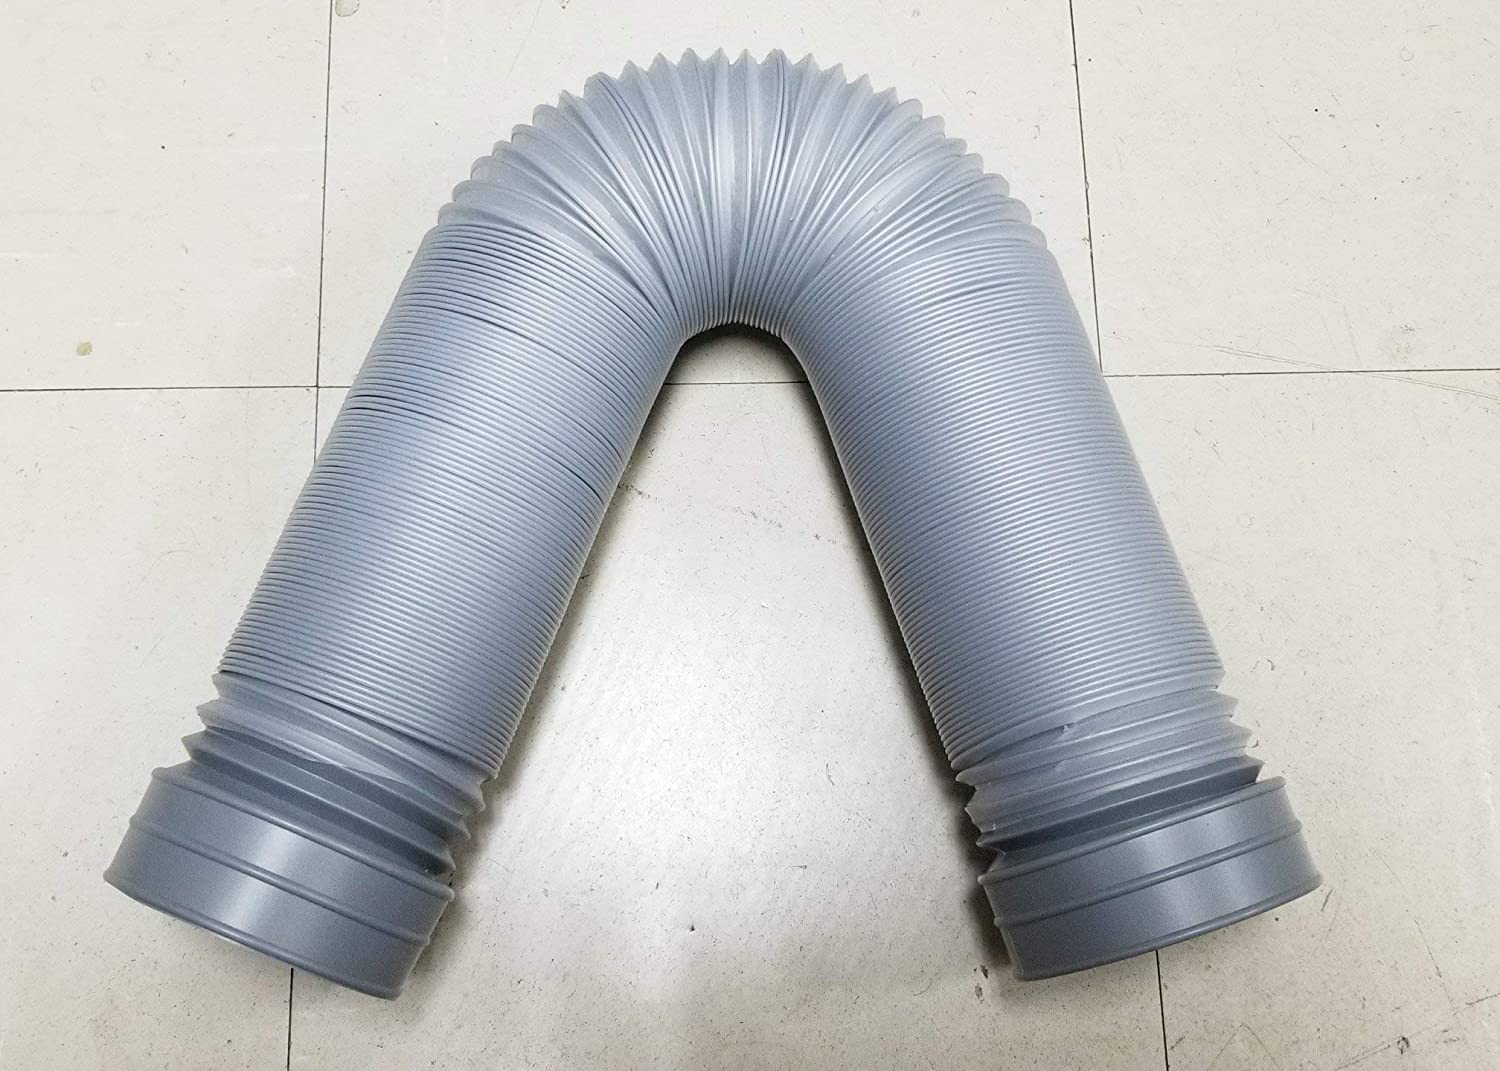 4 Grey 2 Meter Length After Extended Autobahn88 Plastic Retractable Cold Air Intake Duct Pipe Induction Ducting Hose ID 100mm